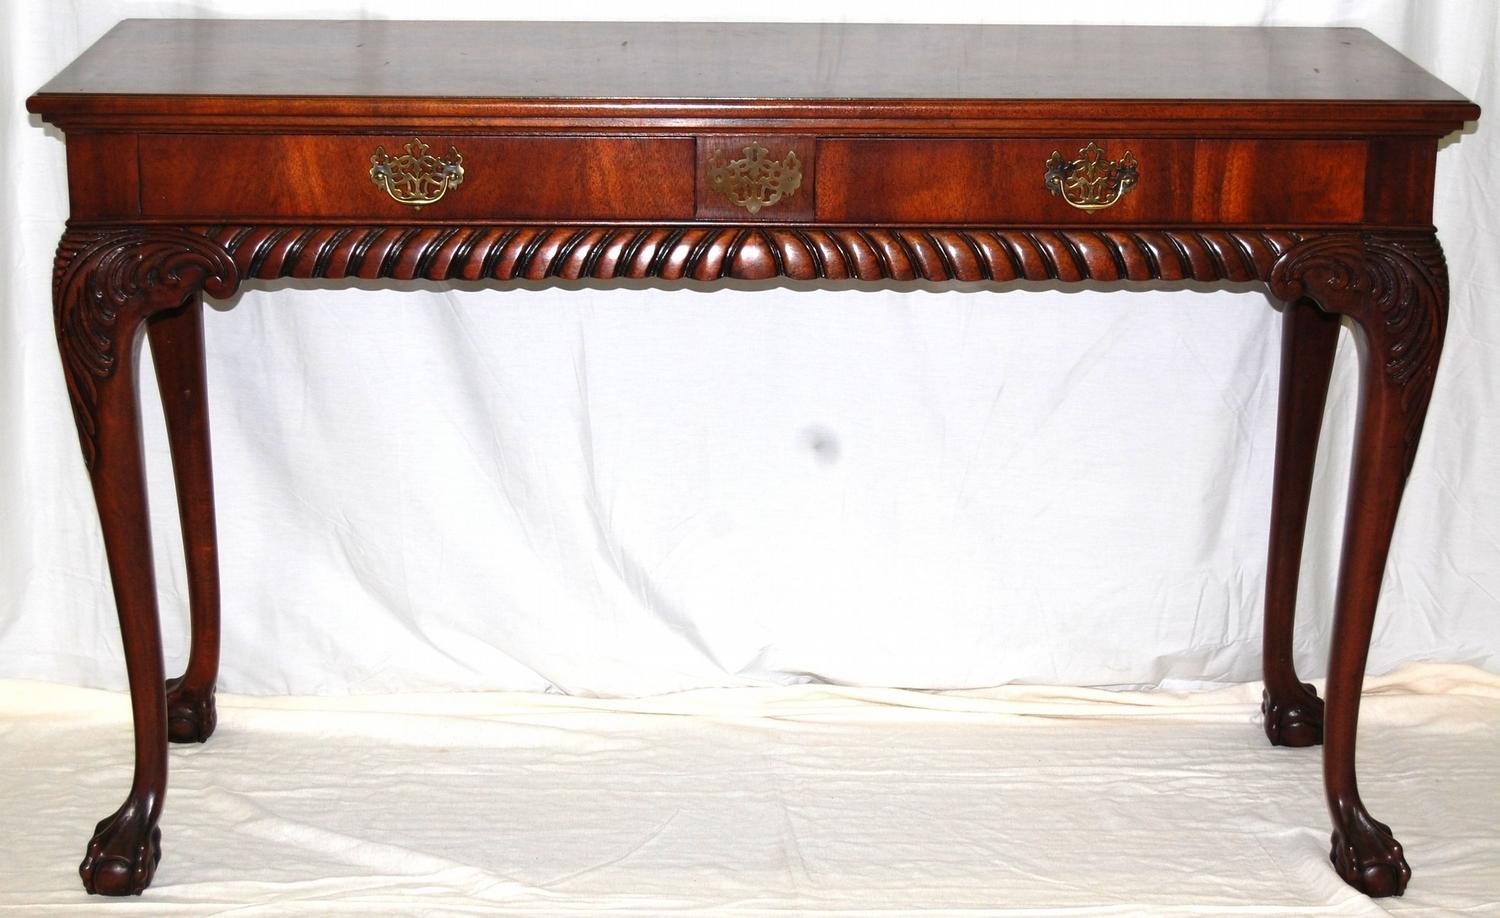 Image 1 : Mount Airy Furniture Company Sofa Console Table W/ Carved Ornate  Detail Work ...